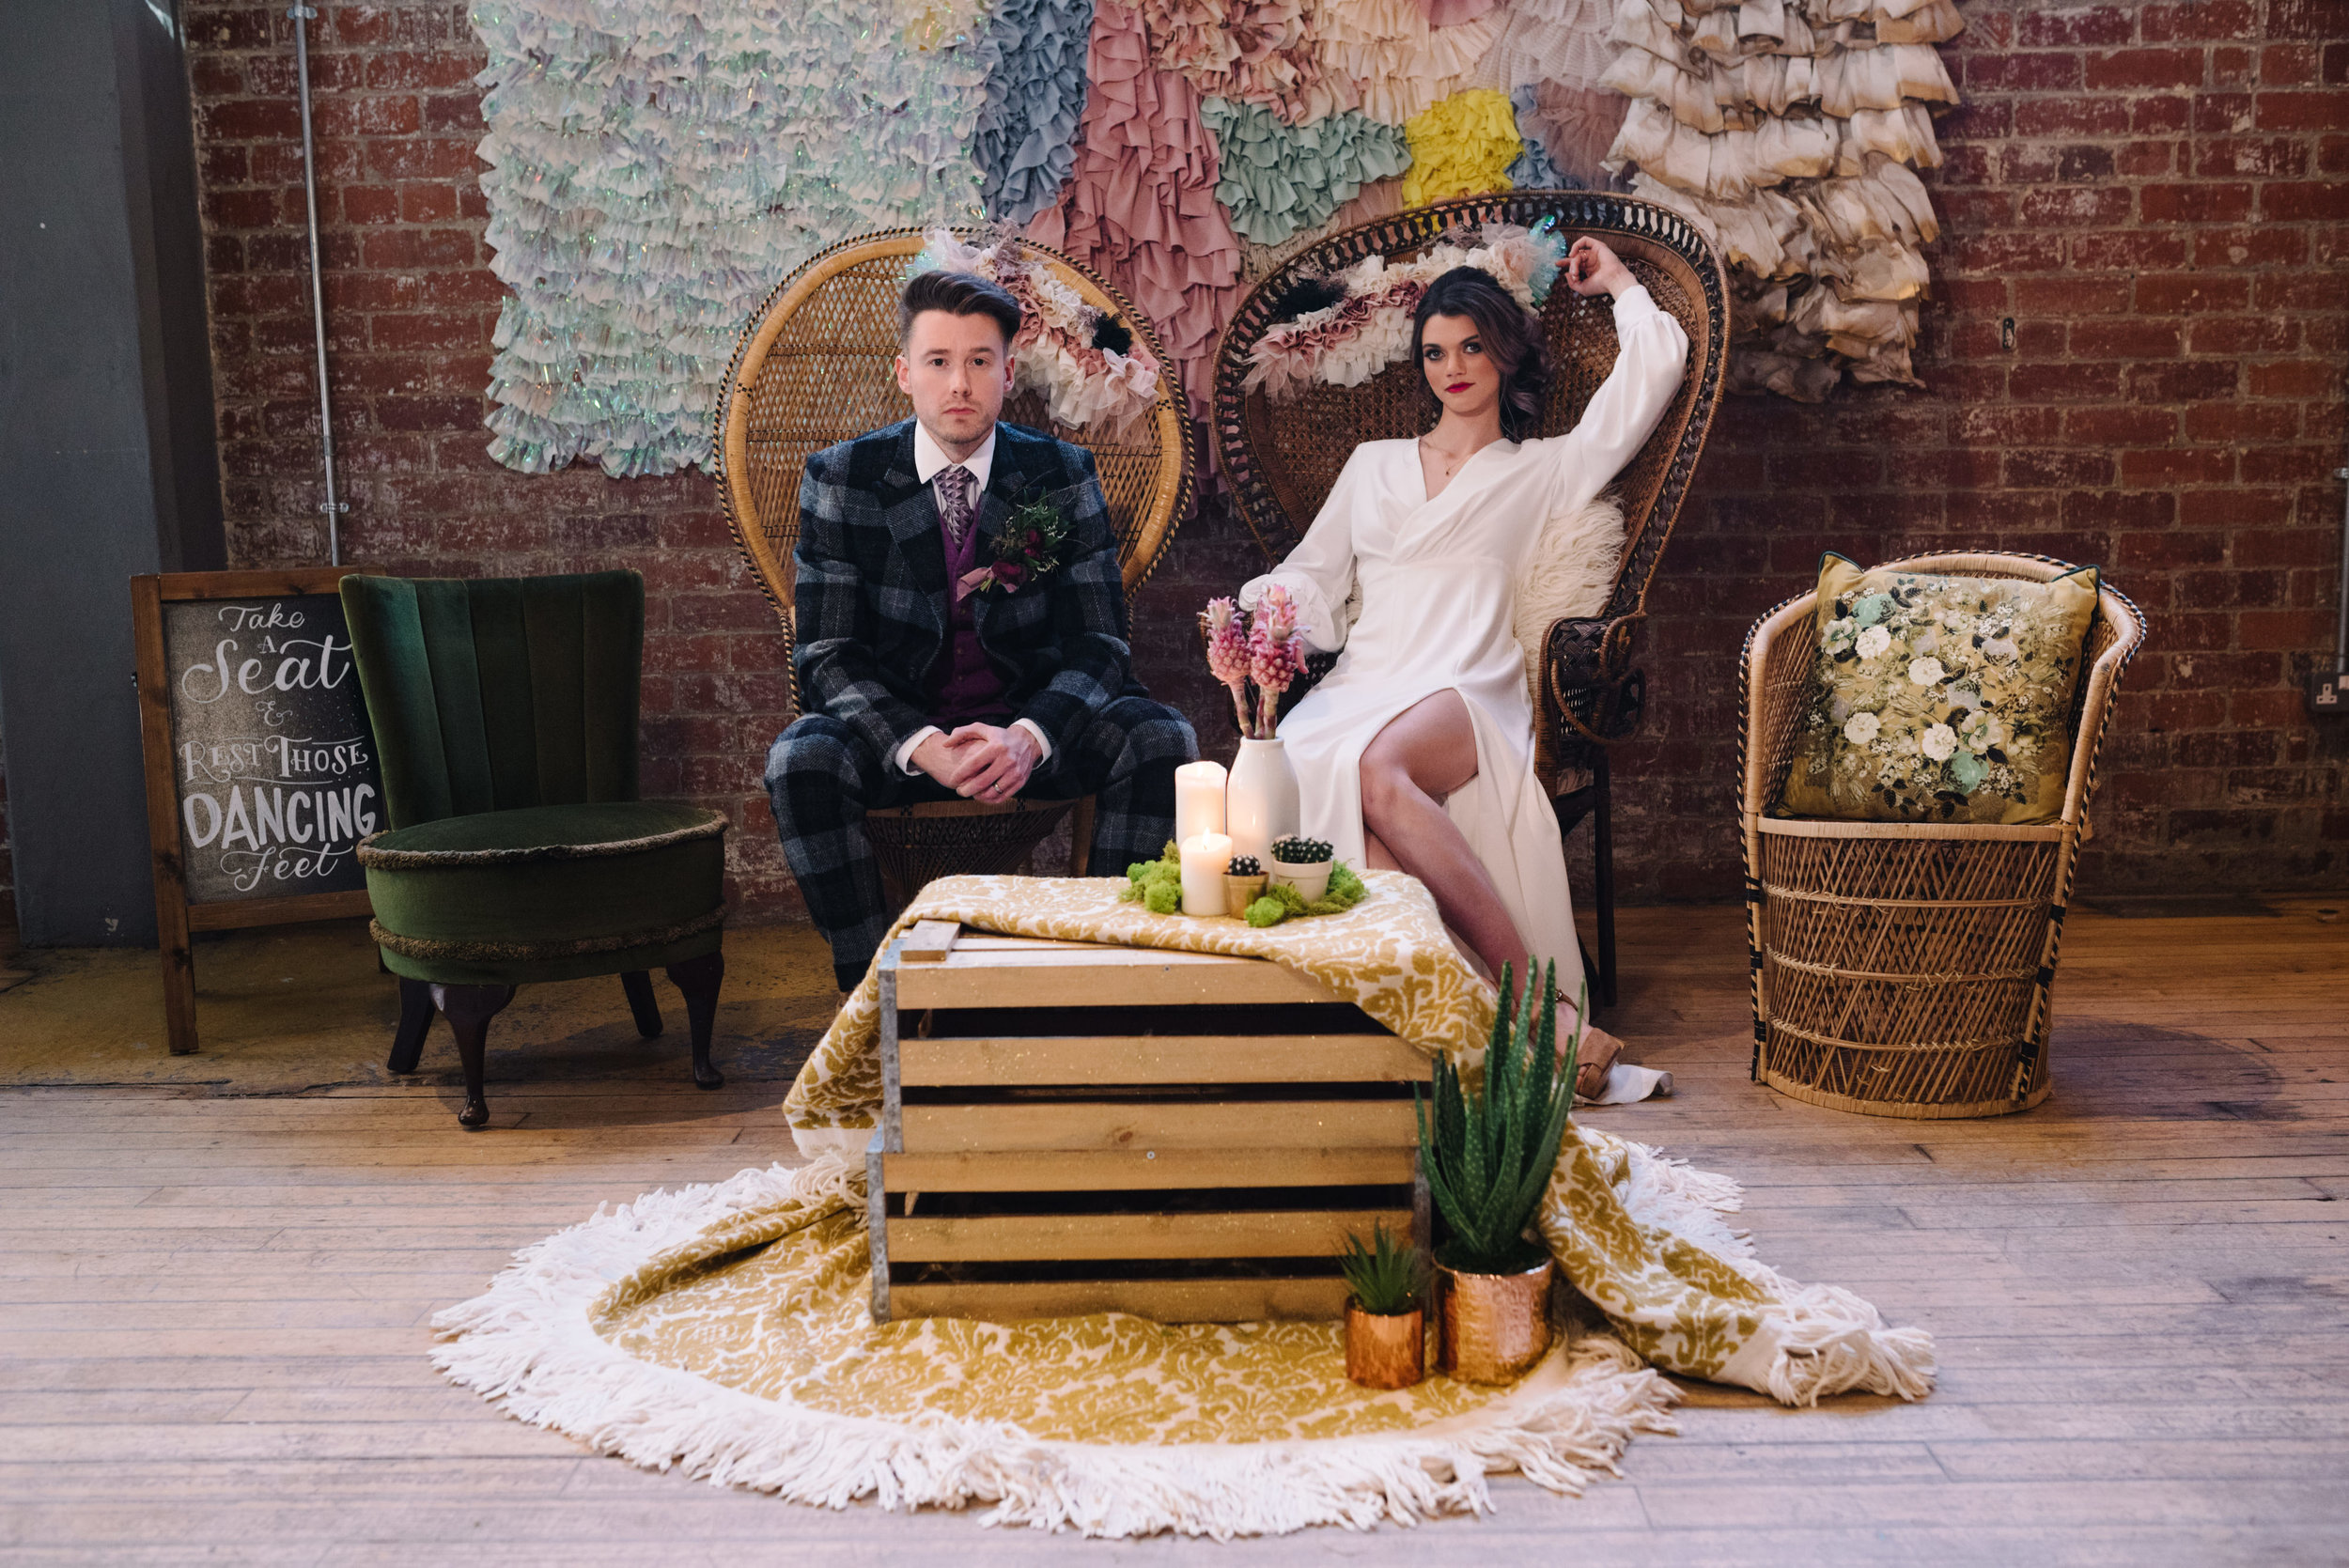 Modern Wedding Inspiration Shoot in Glasgow Brewery With a Frill Installation, Candy Floss and Neon 00141.jpg